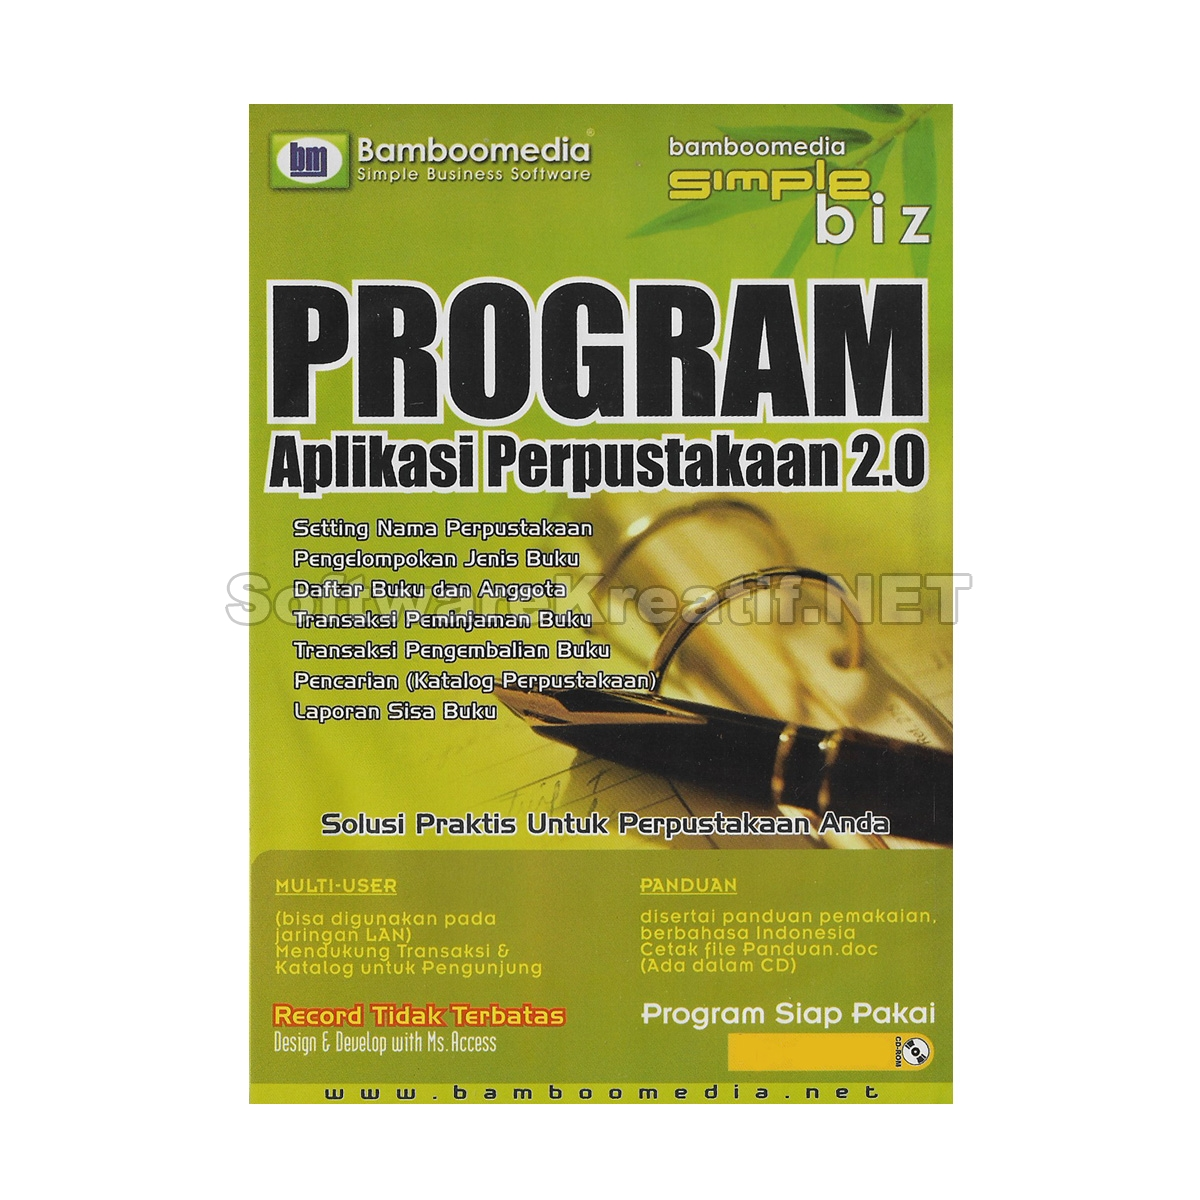 program aplikasi perpustakaan 2.0